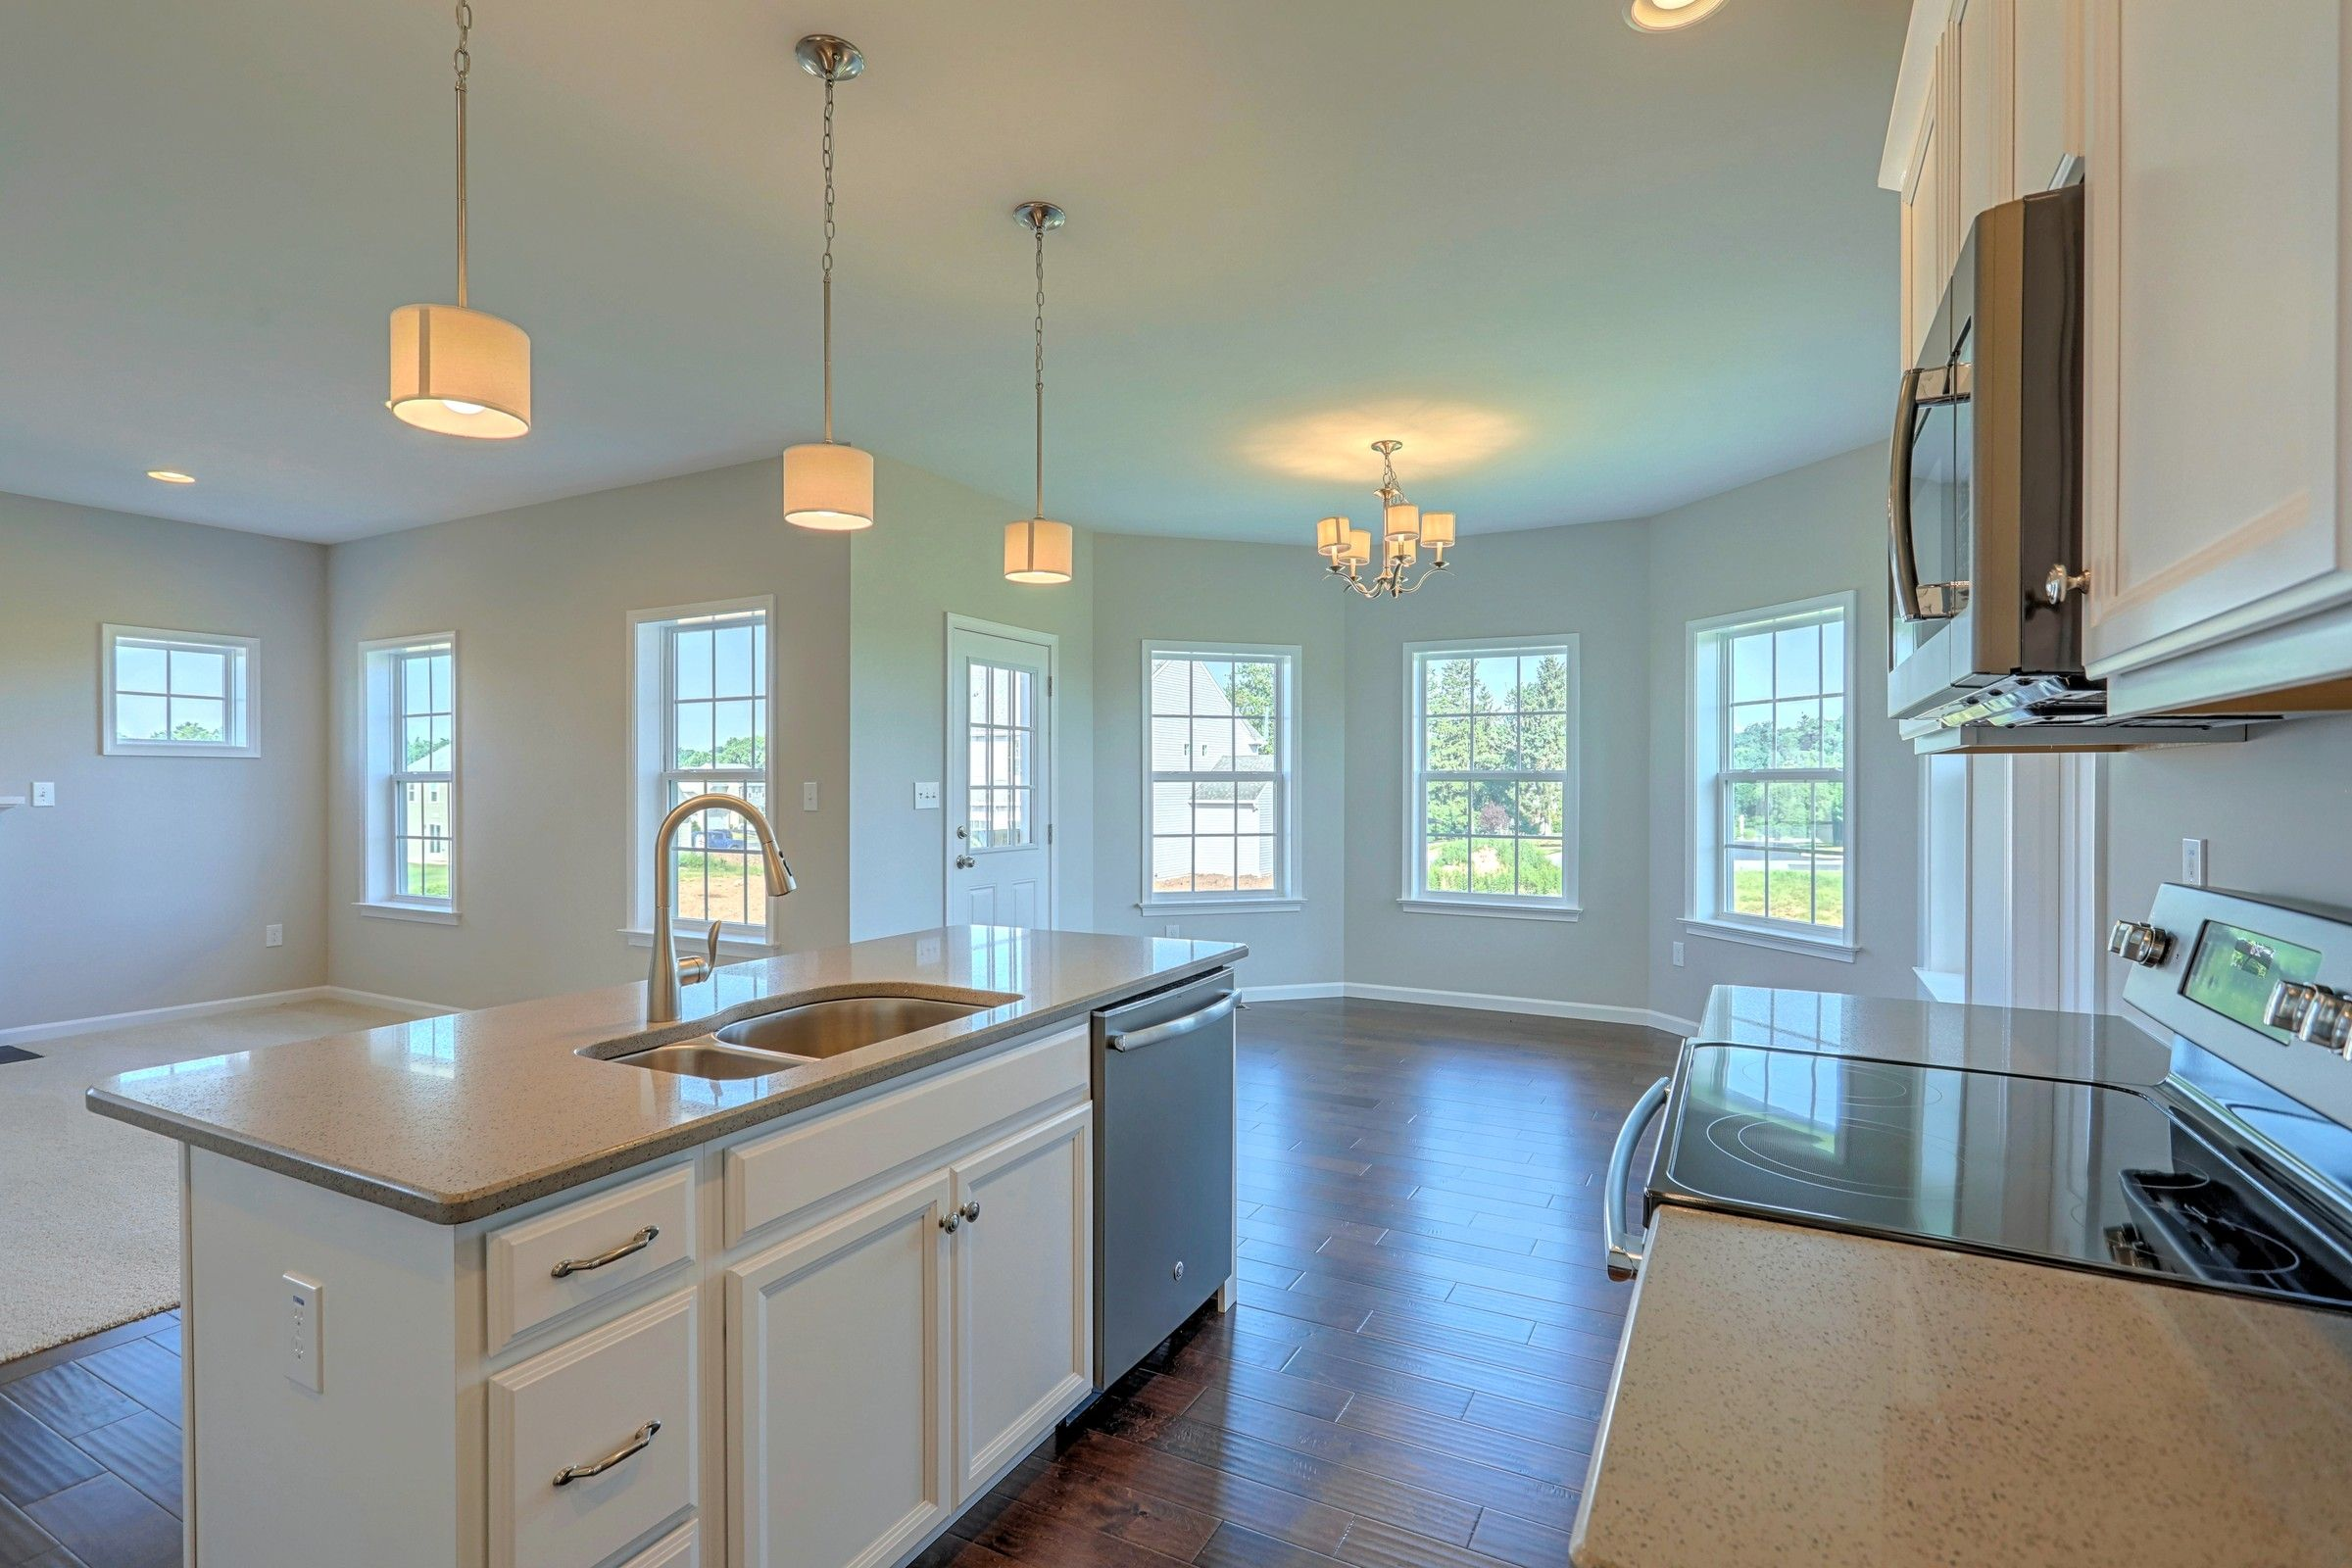 Kitchen featured in the Brentwood Heritage By Keystone Custom Homes in York, PA